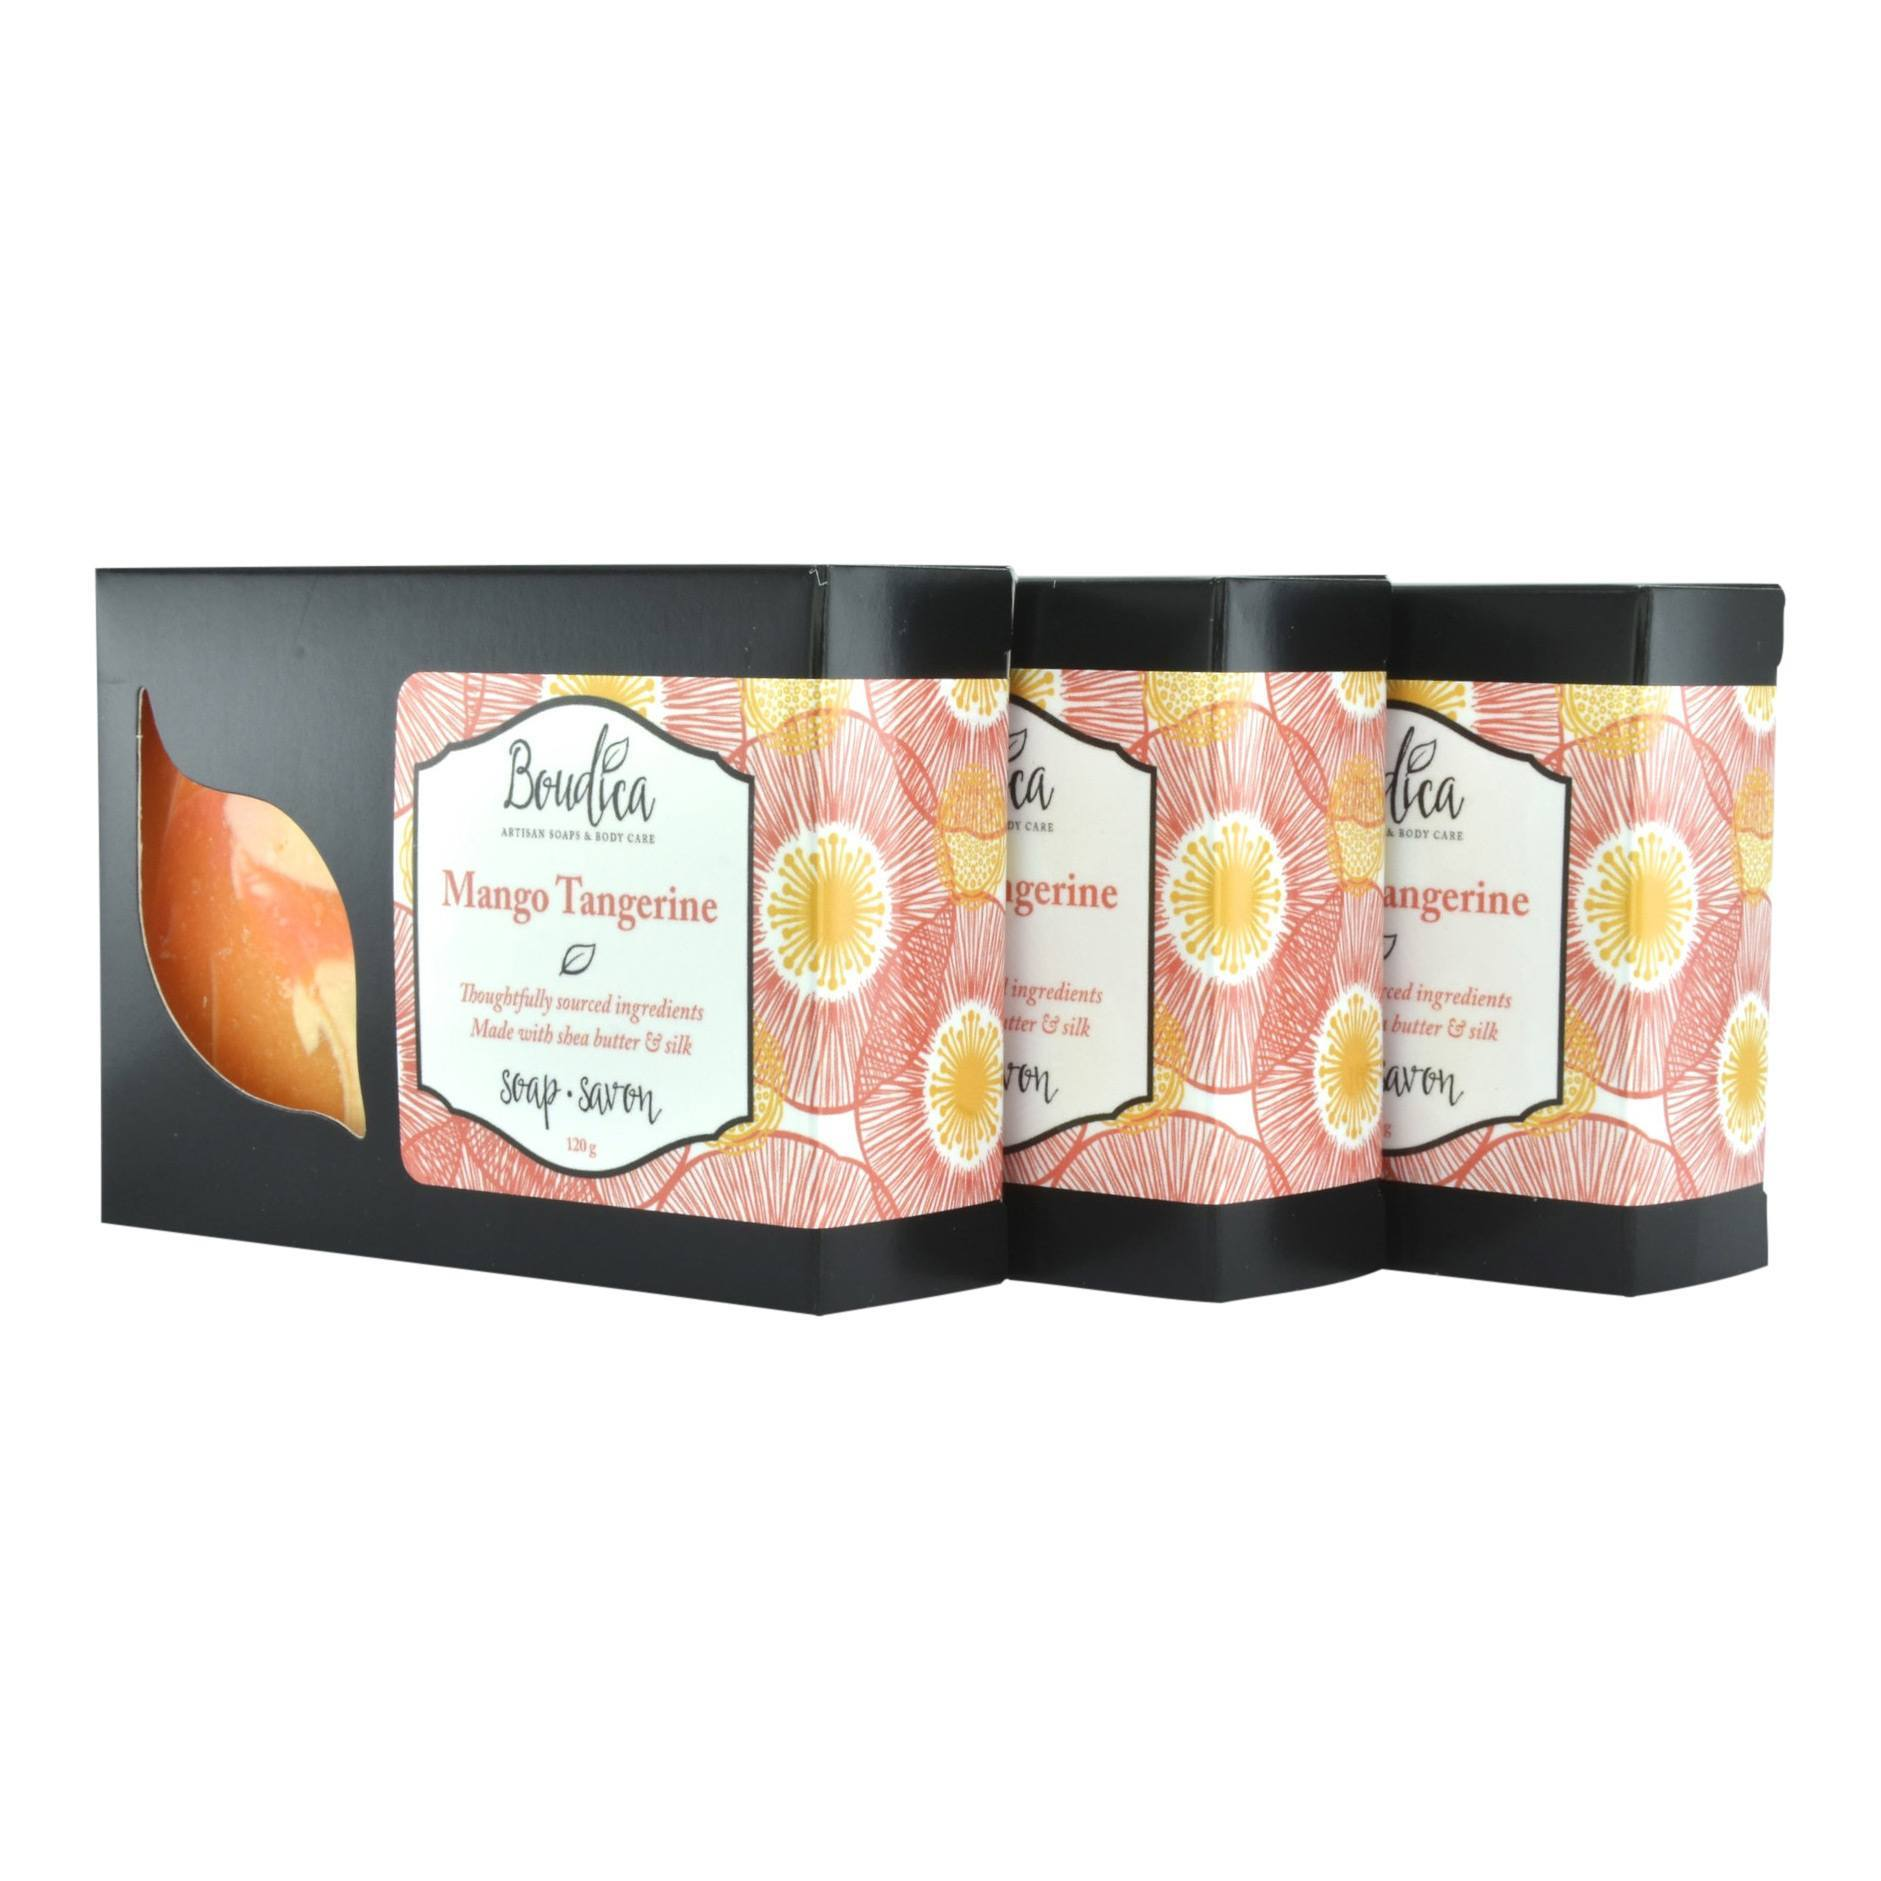 Mango Tangerine soap, gift packaging - Boudica Body Care